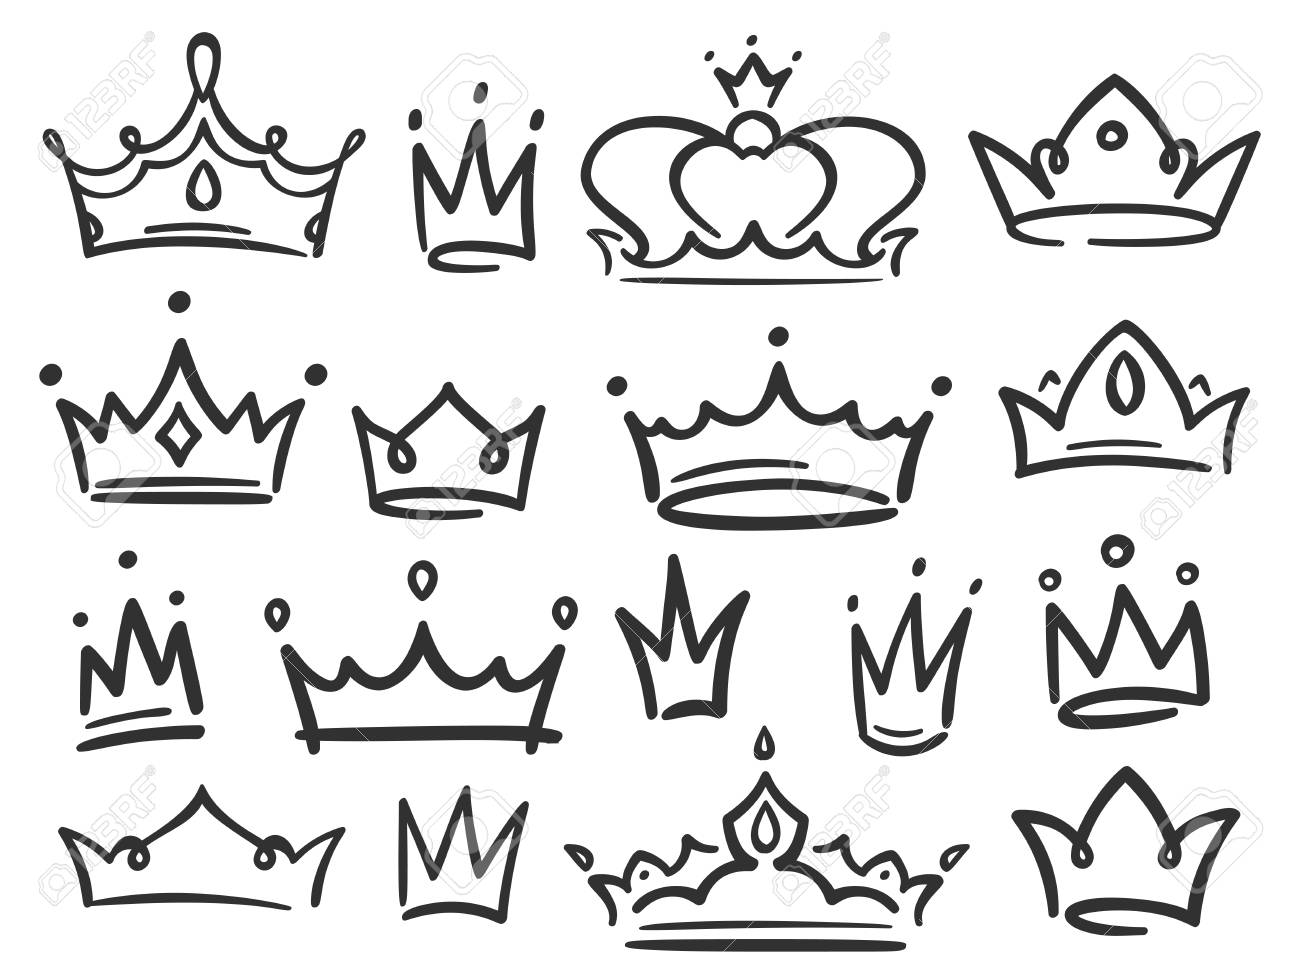 Sketch Crown Simple Graffiti Crowning Elegant Queen Or King Stock Photo Picture And Royalty Free Image Image 115389678